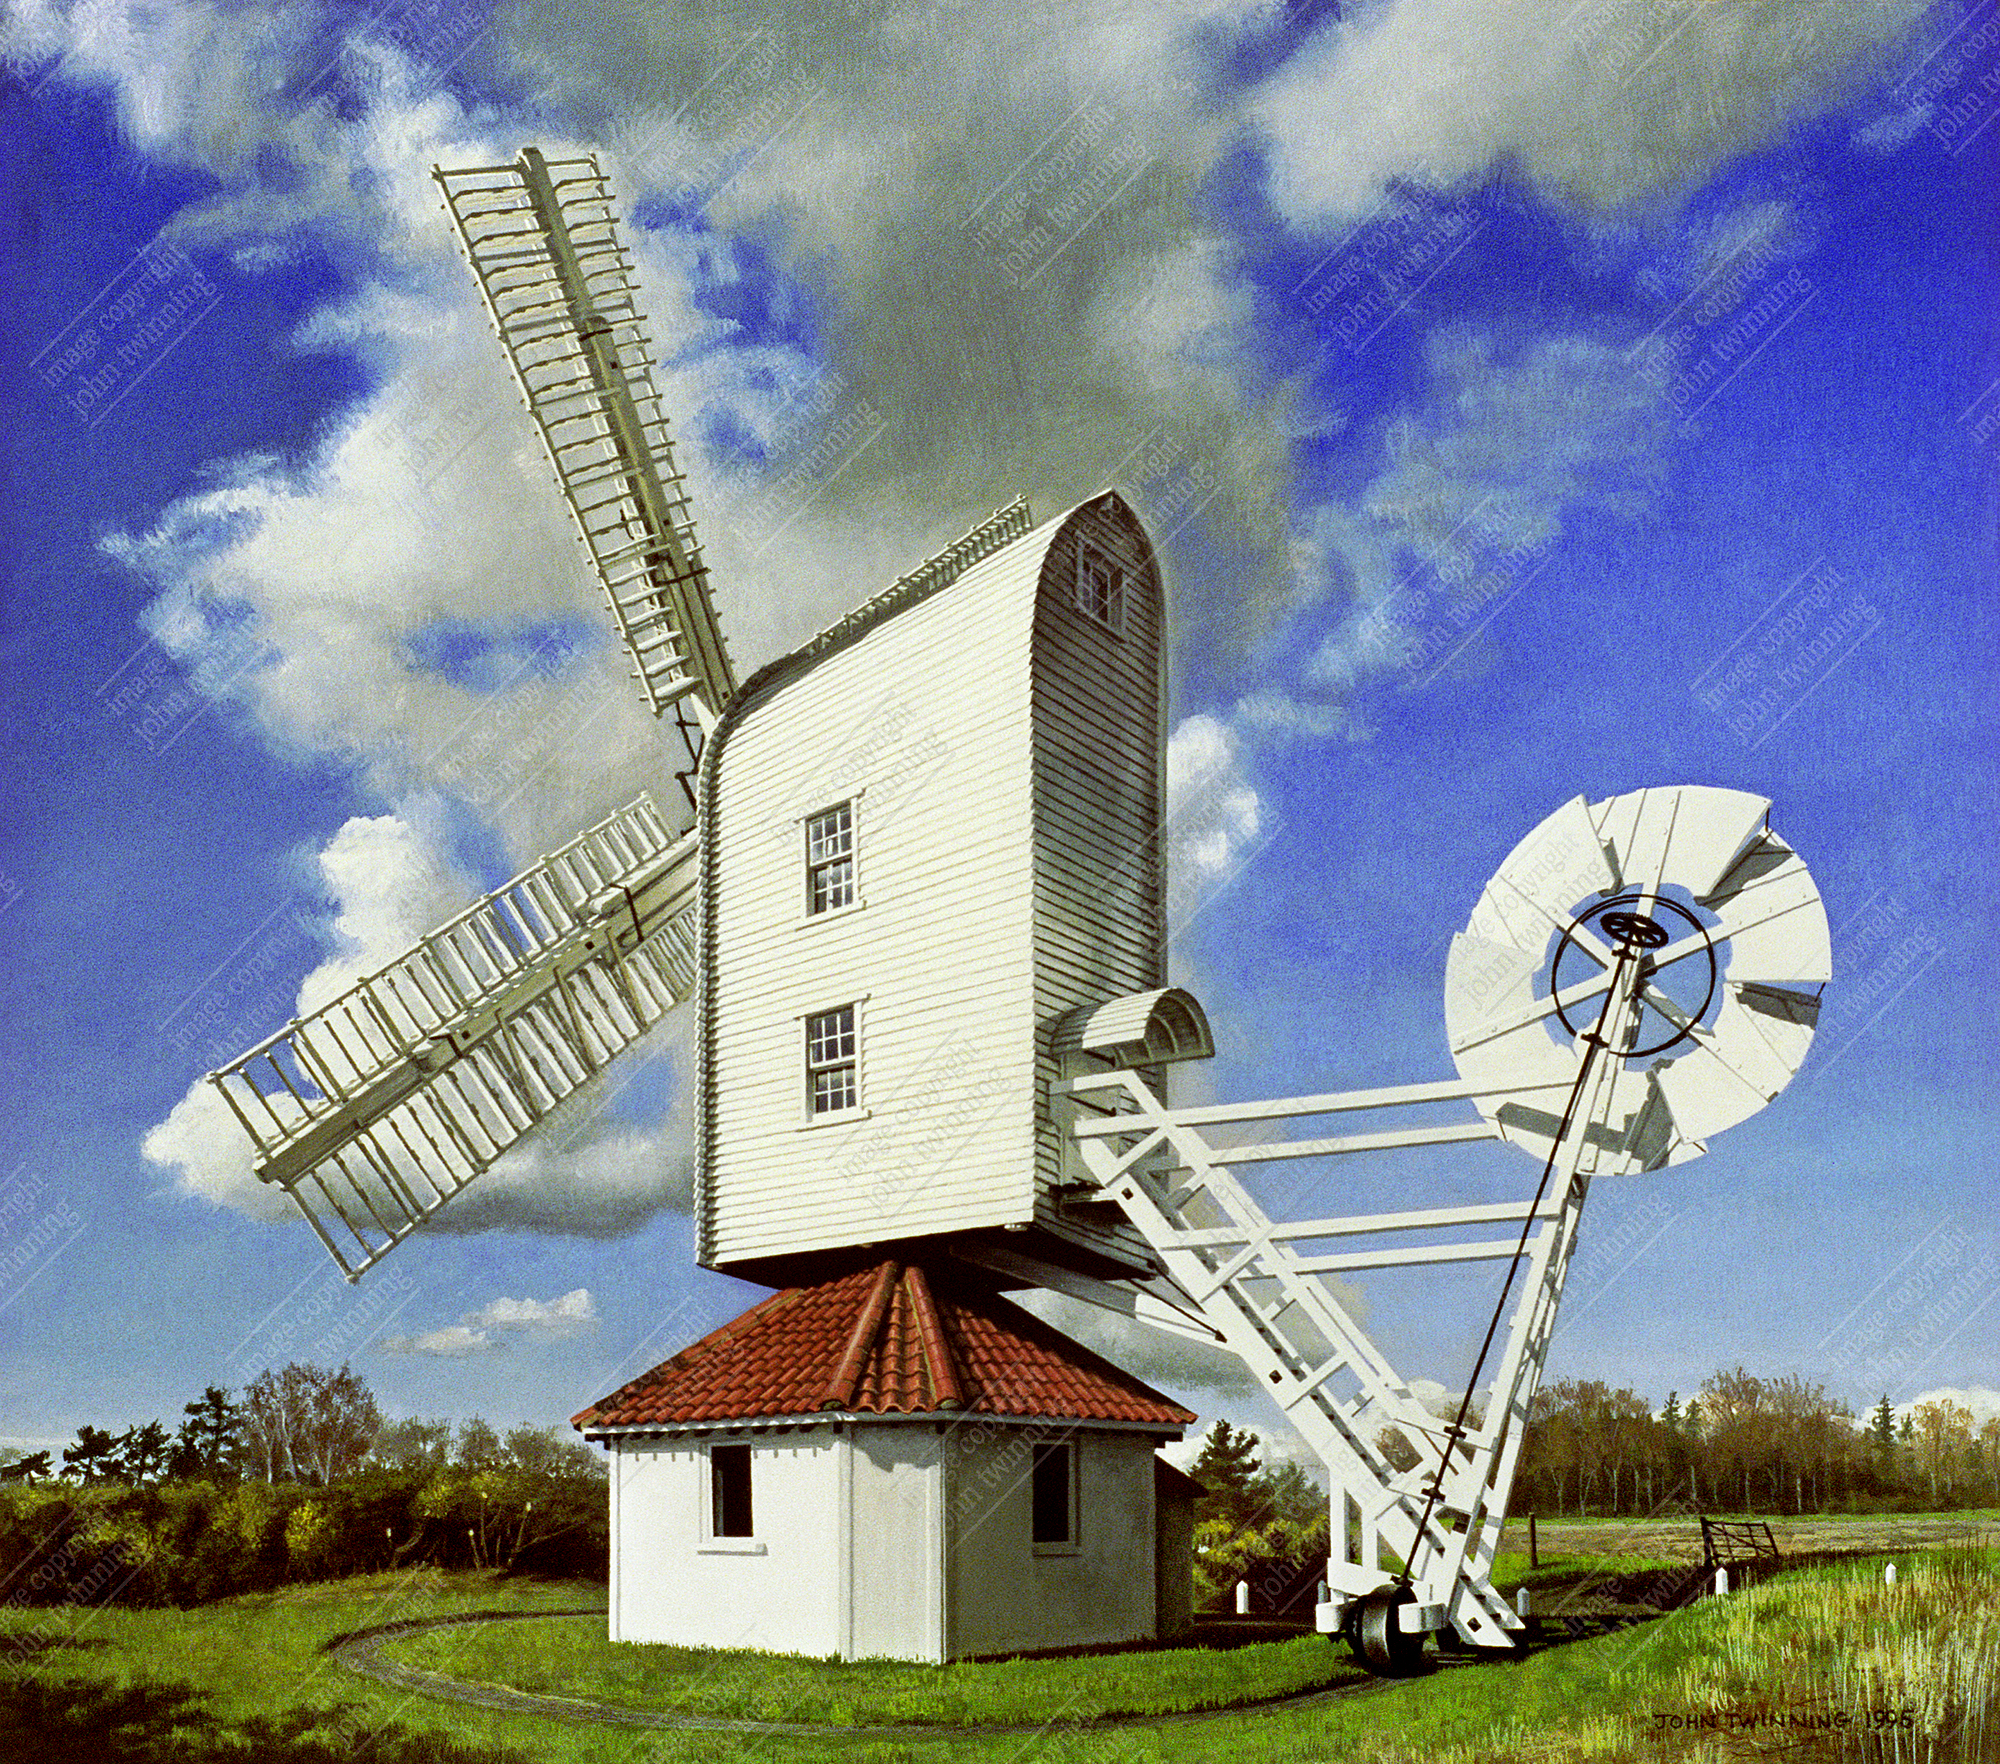 Windmill at Thorpeness, Suffolk